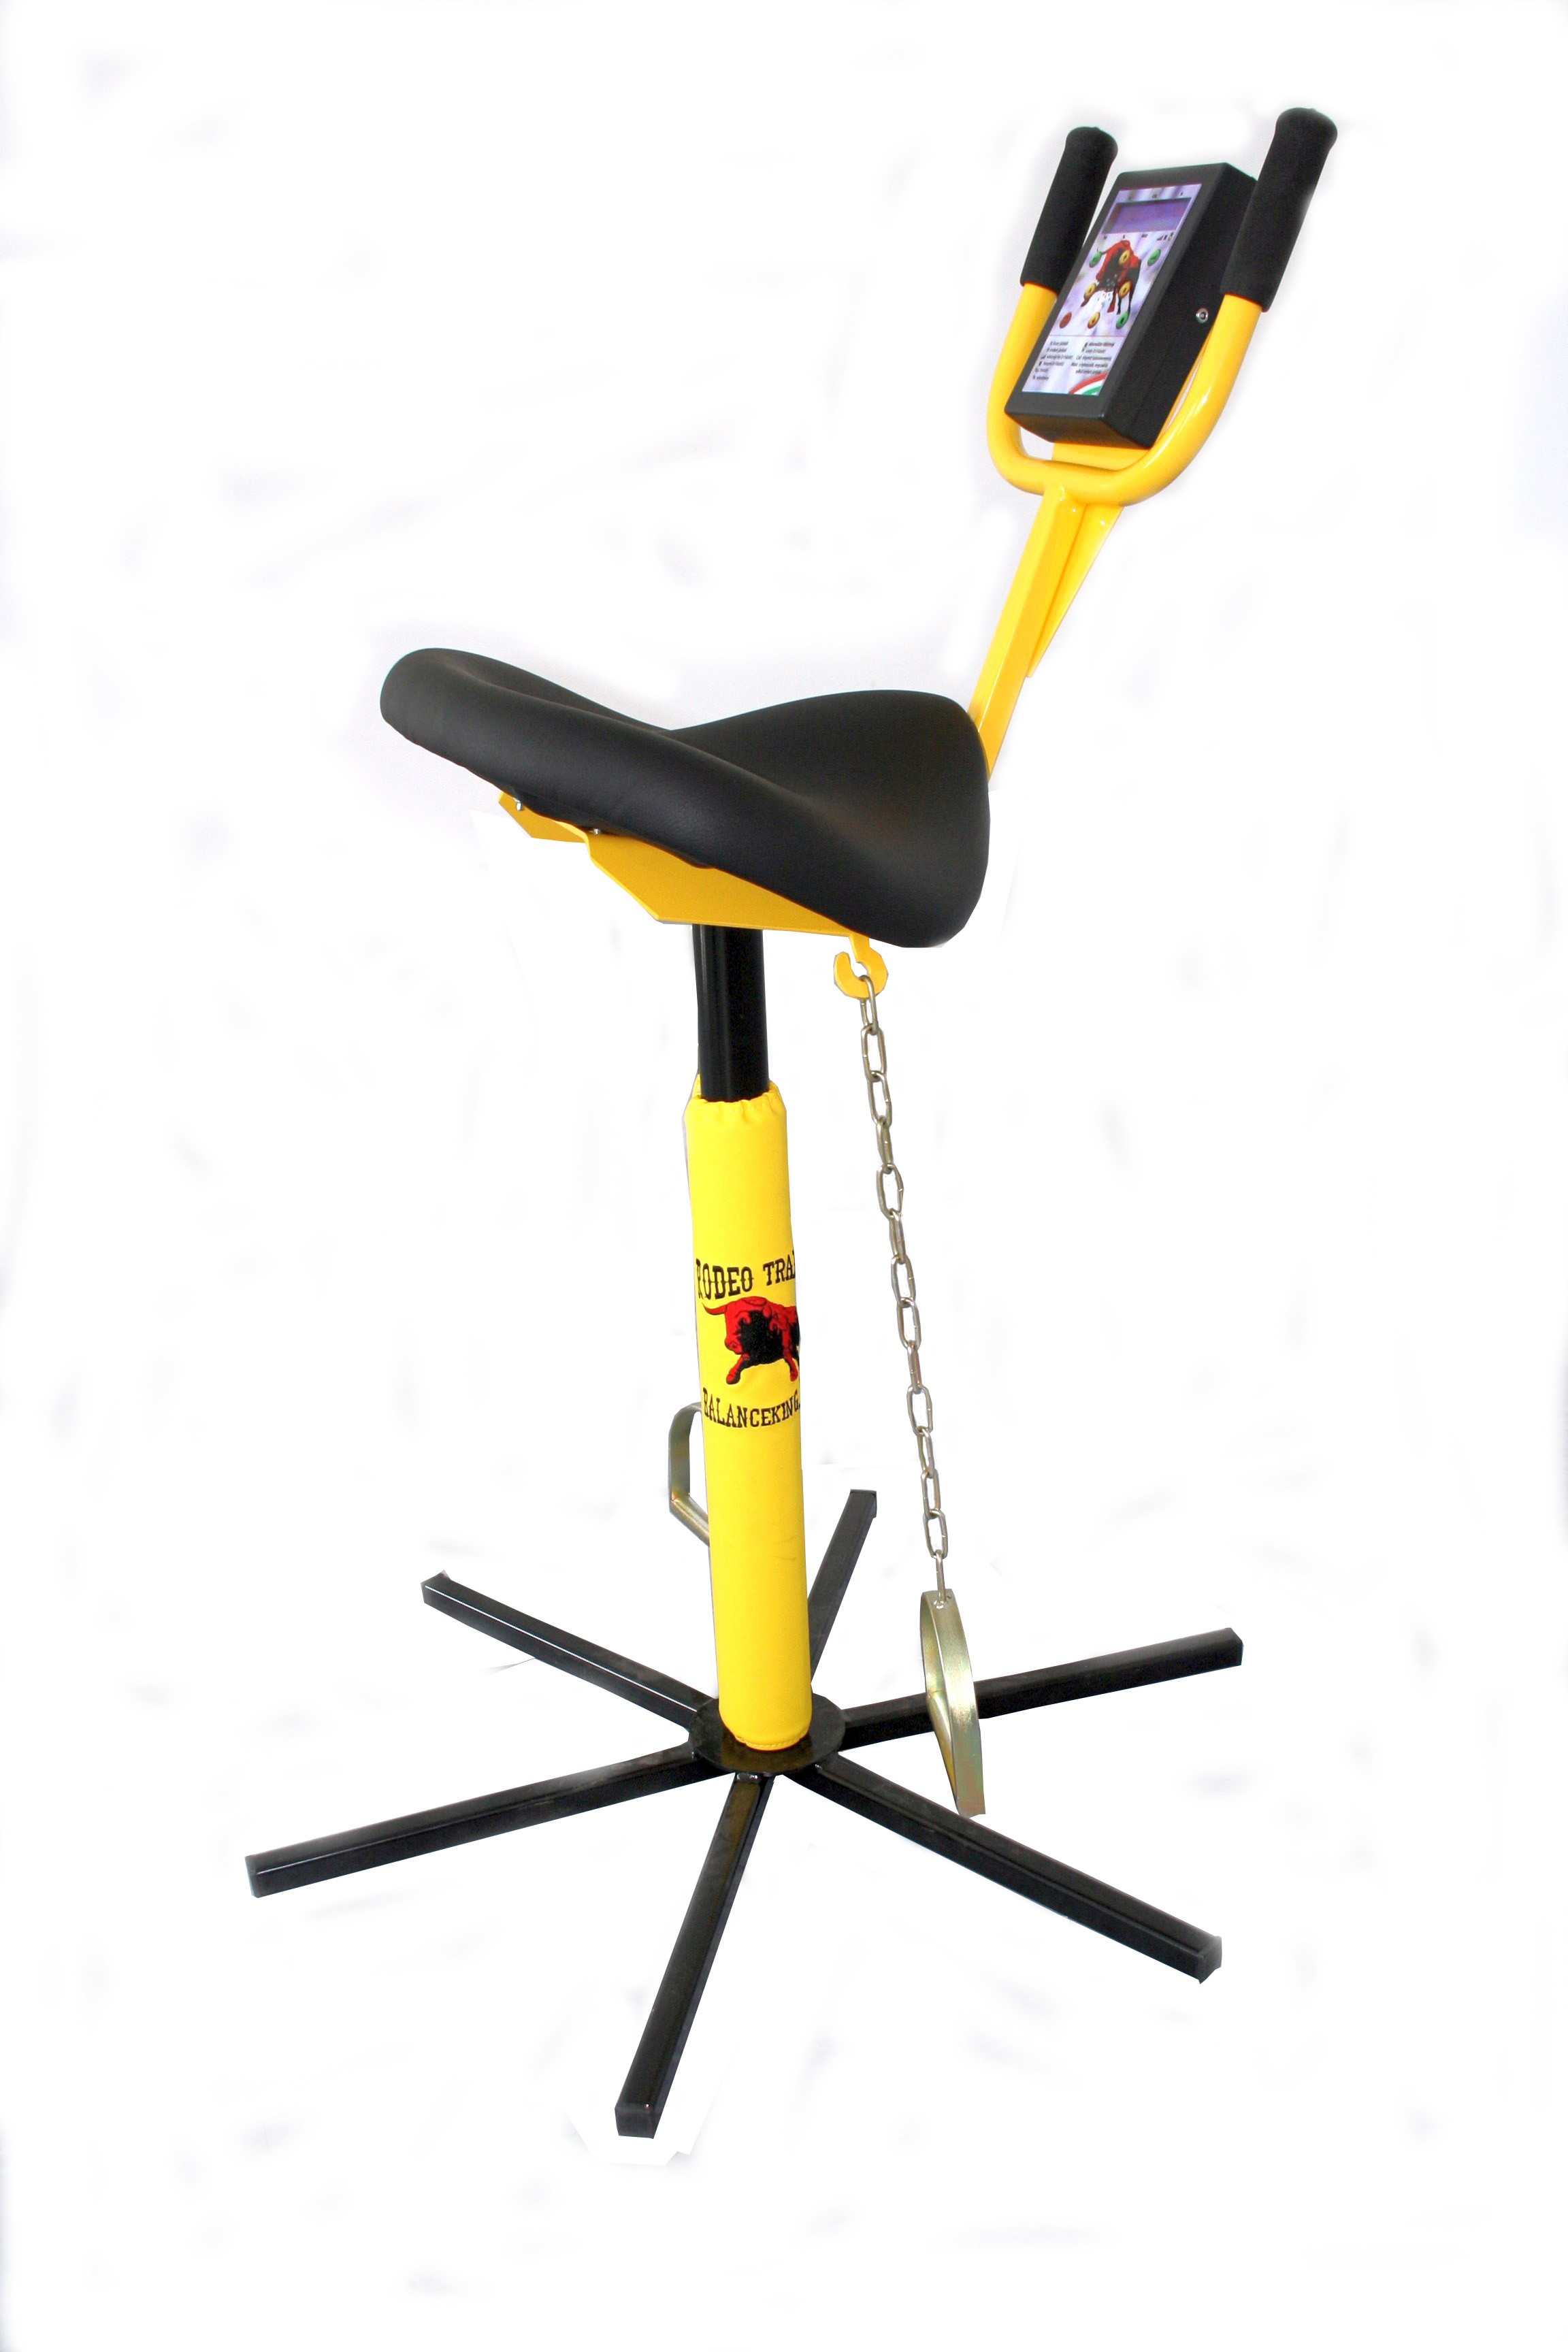 Rodeo trainer exercise chair